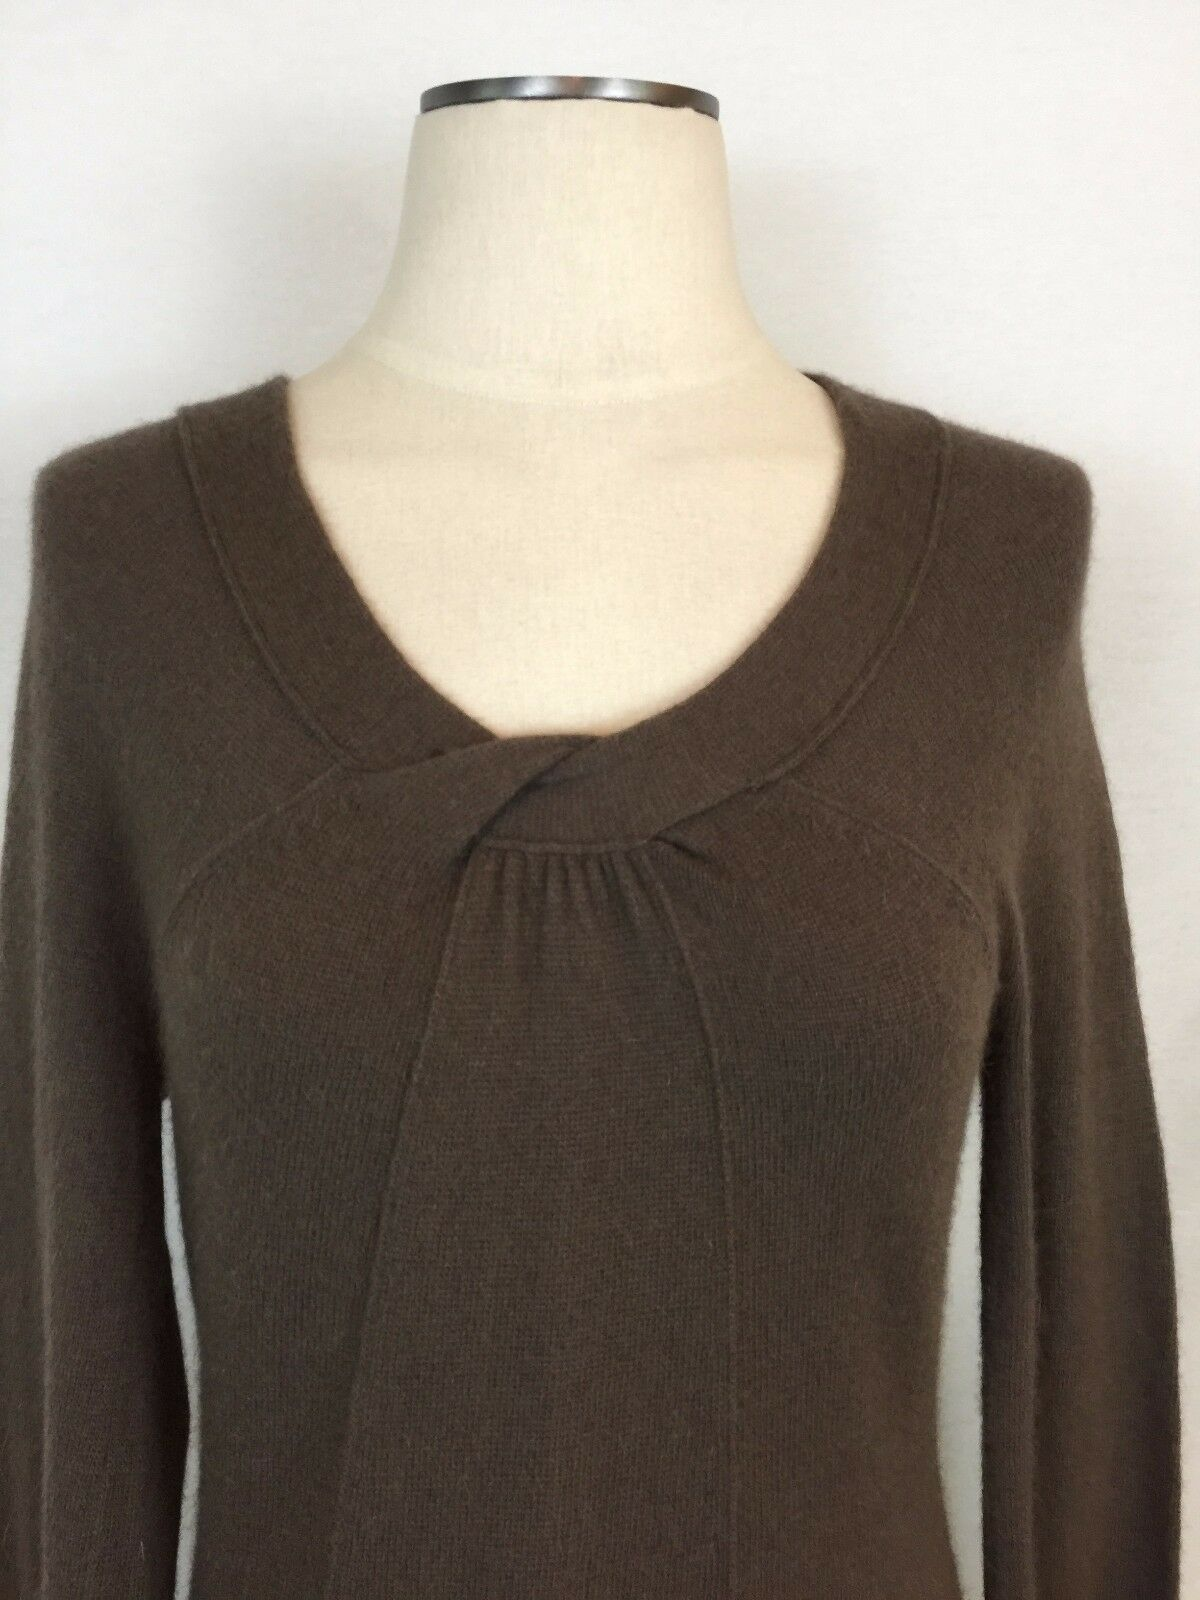 7d414b740243ea ... ANTHROPOLOGIE SPARROW S SWEATER LIGHT BROWN LONG FLARE FLARE FLARE  SLEEVES ANGORA BLEND PRET a36ea7 ...